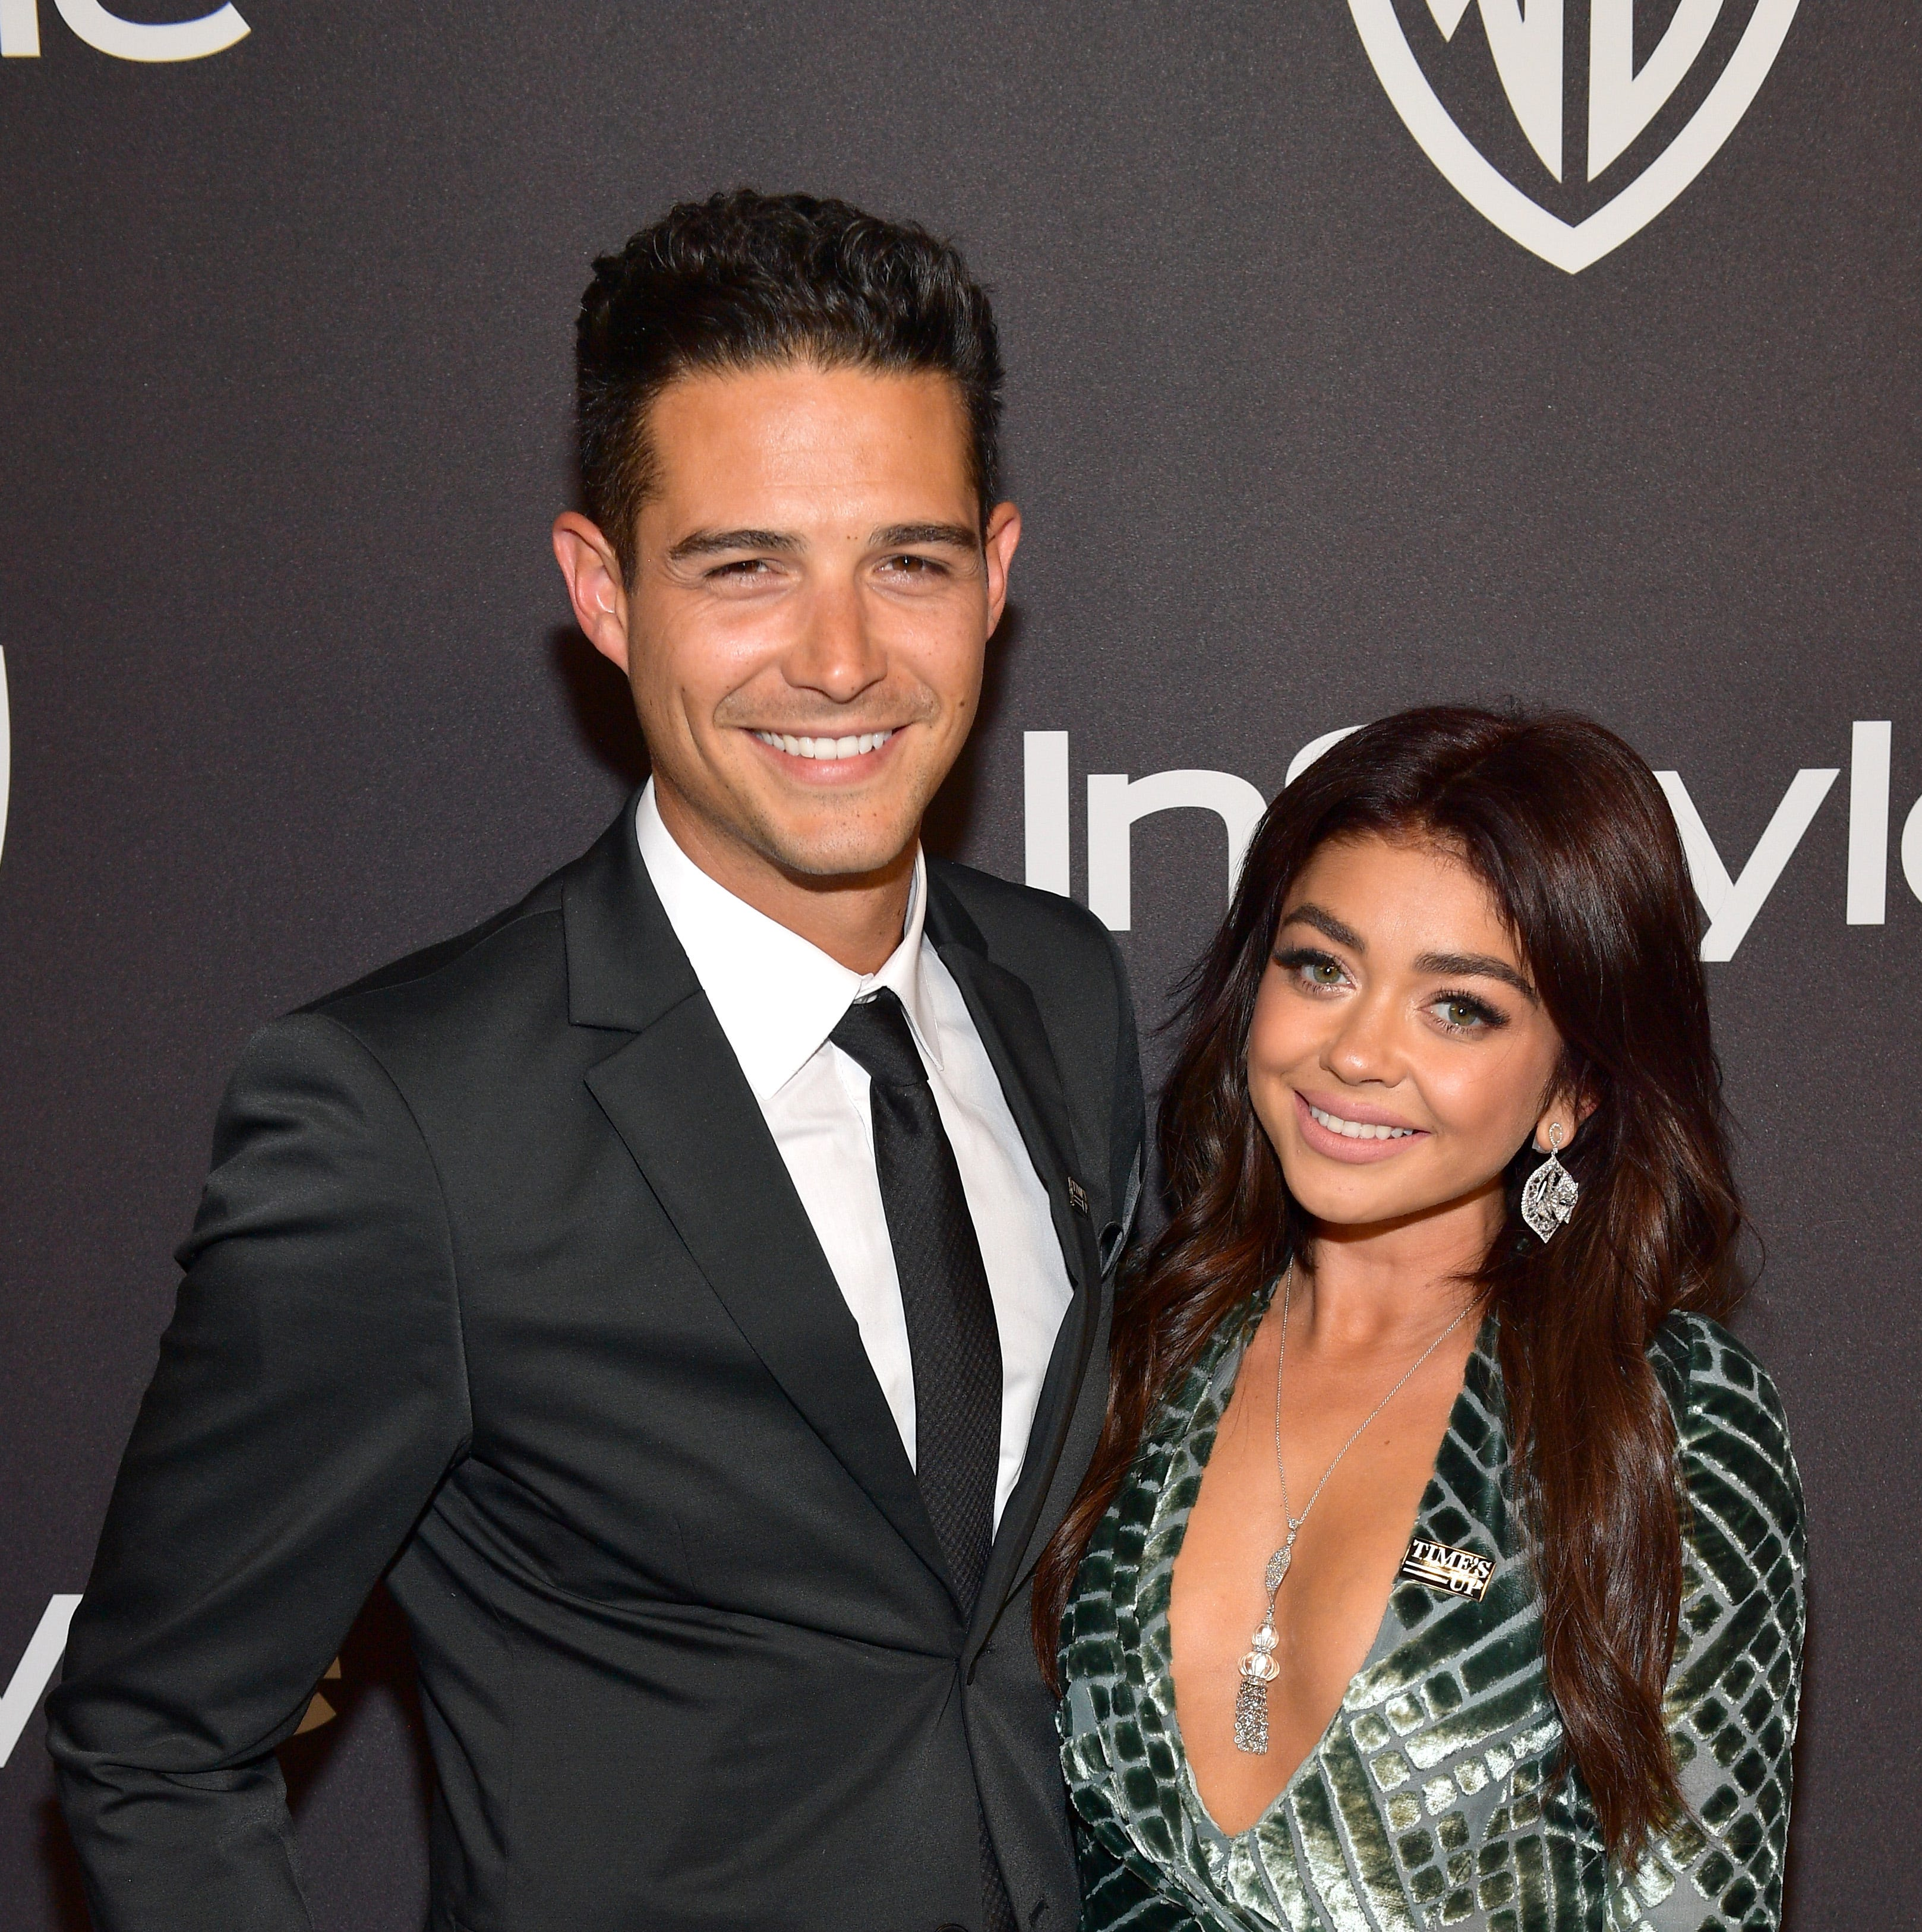 BEVERLY HILLS, CA - JANUARY 06: L-R Wells Adams and Sarah Hyland attend the 2019 InStyle and Warner Bros. 76th Annual Golden Globe Awards Post-Party at The Beverly Hilton Hotel on January 6, 2019 in Beverly Hills, California.  (Photo by Matt Winkelmeyer/Getty Images for InStyle) ORG XMIT: 775277744 ORIG FILE ID: 1078450064